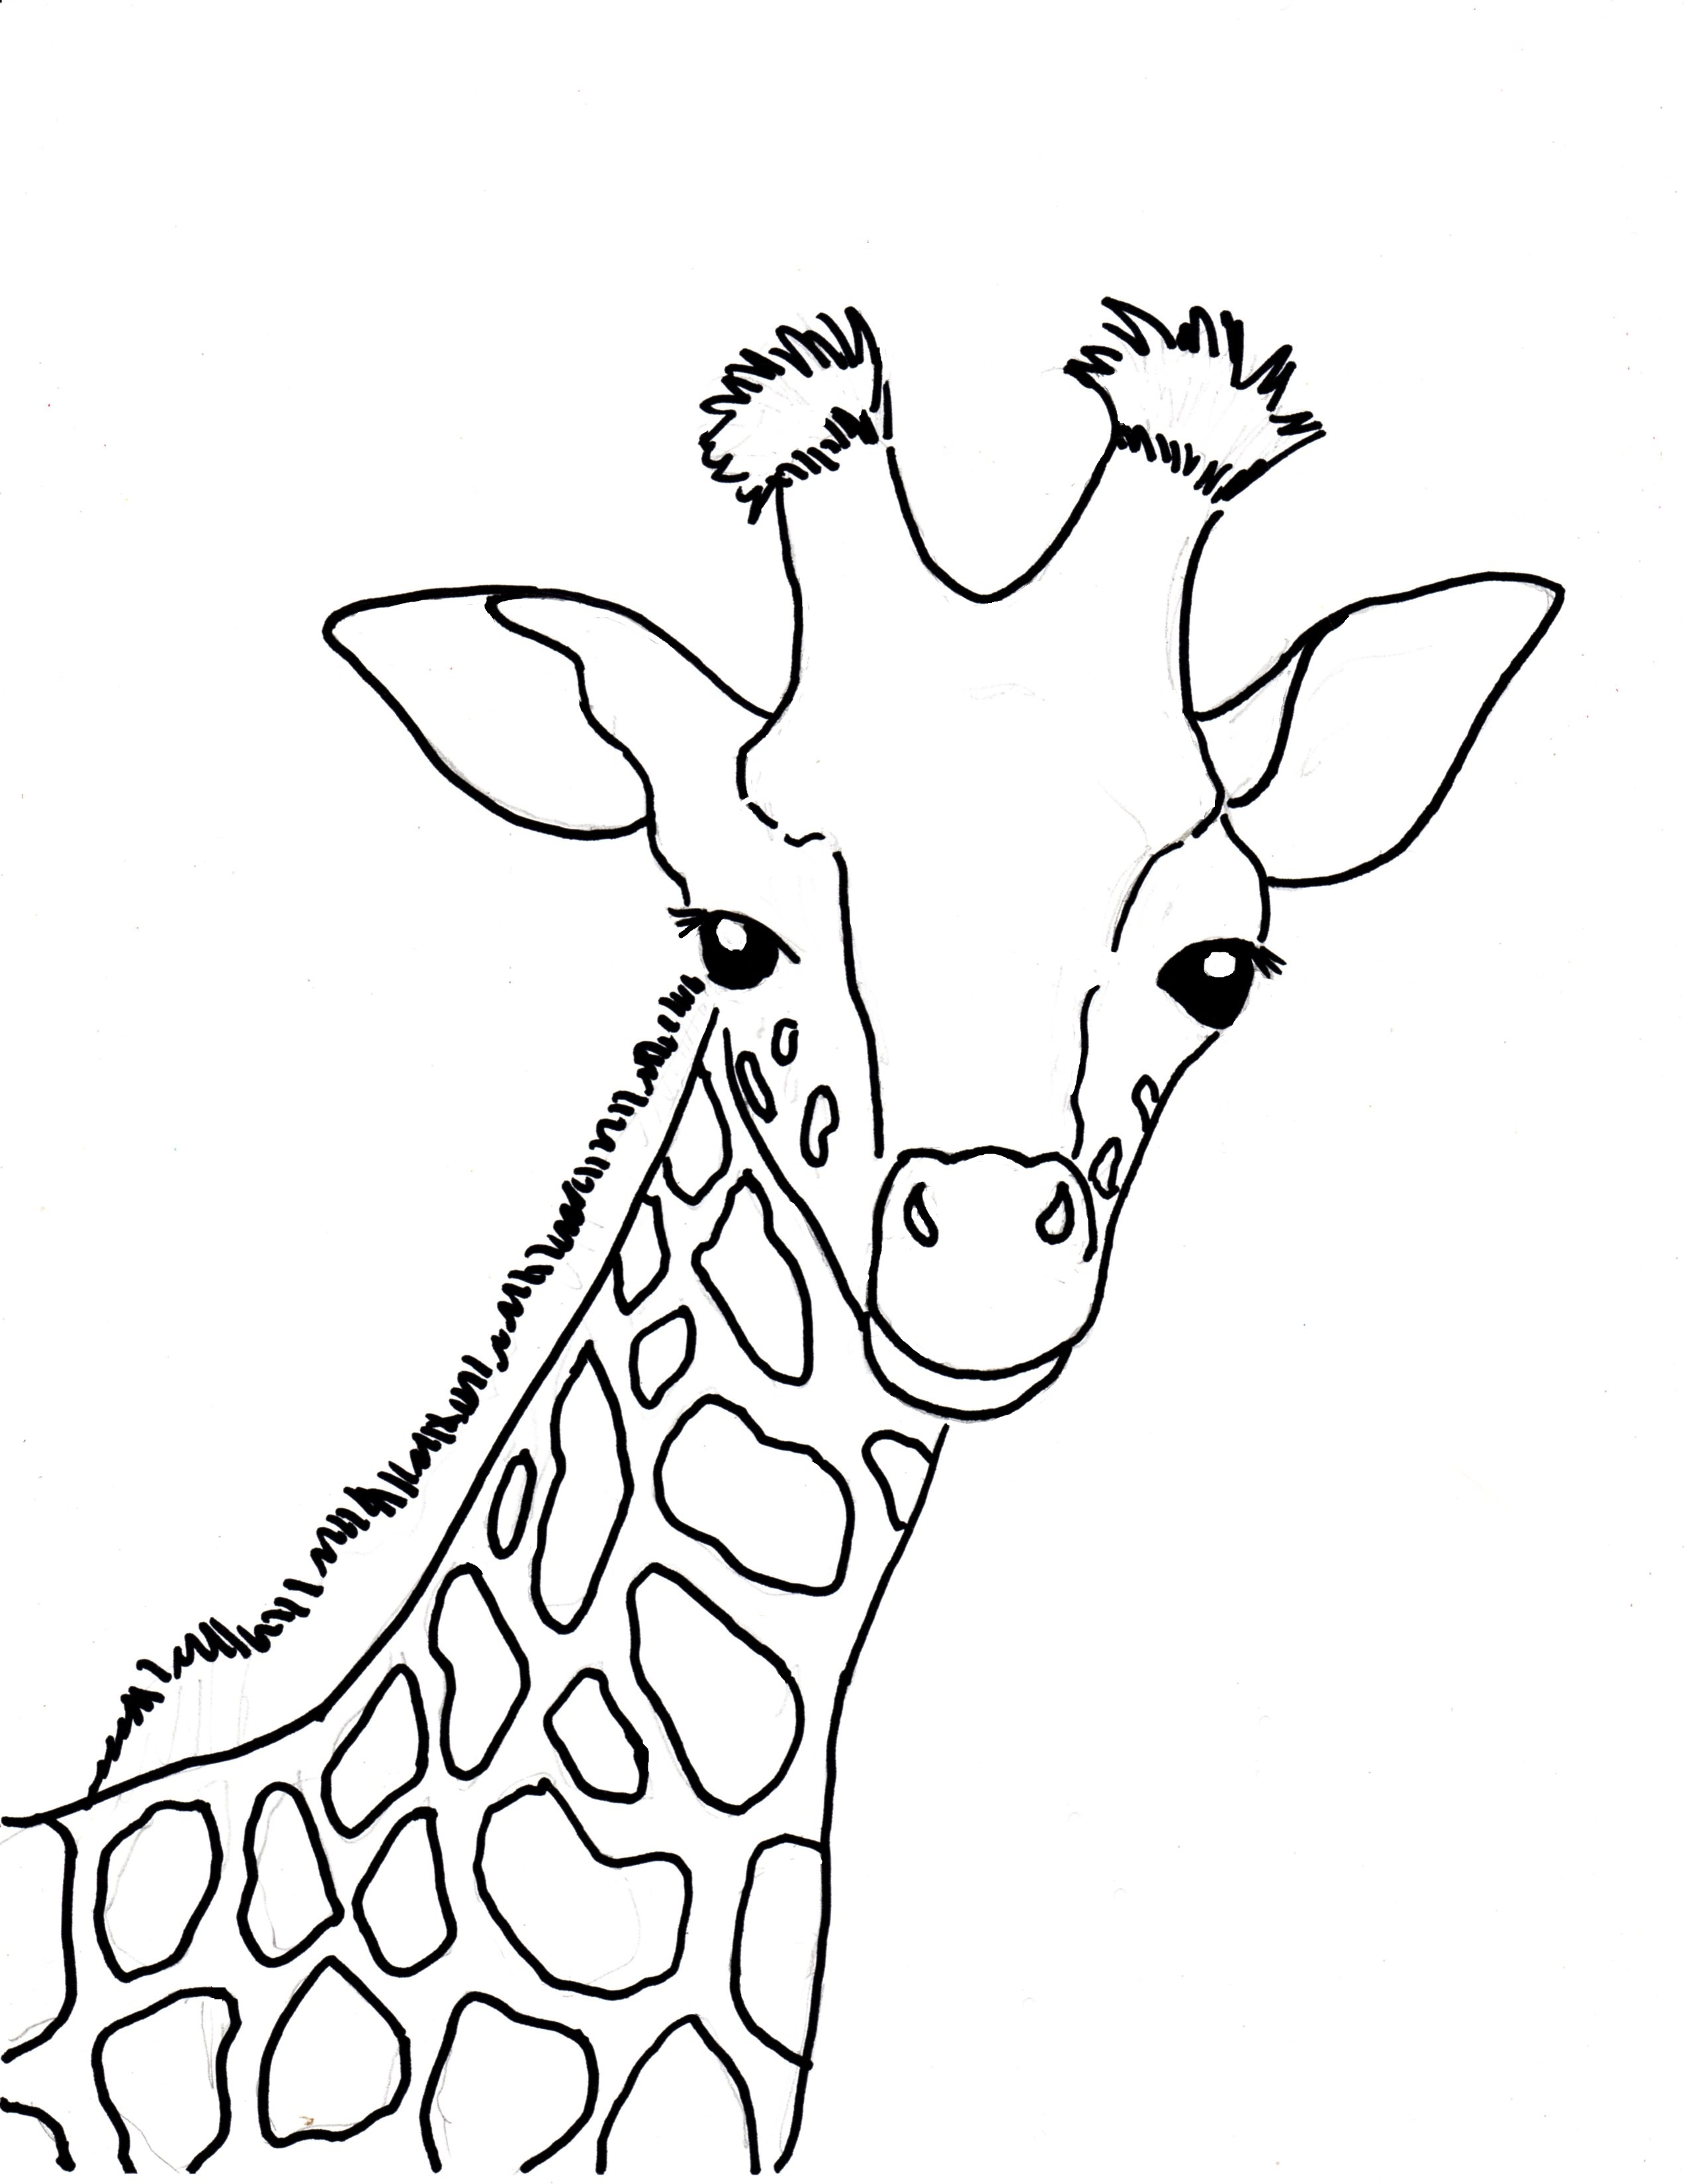 2545x3300 Baby Giraffe Coloring Page Samantha Bell Search Results Fun